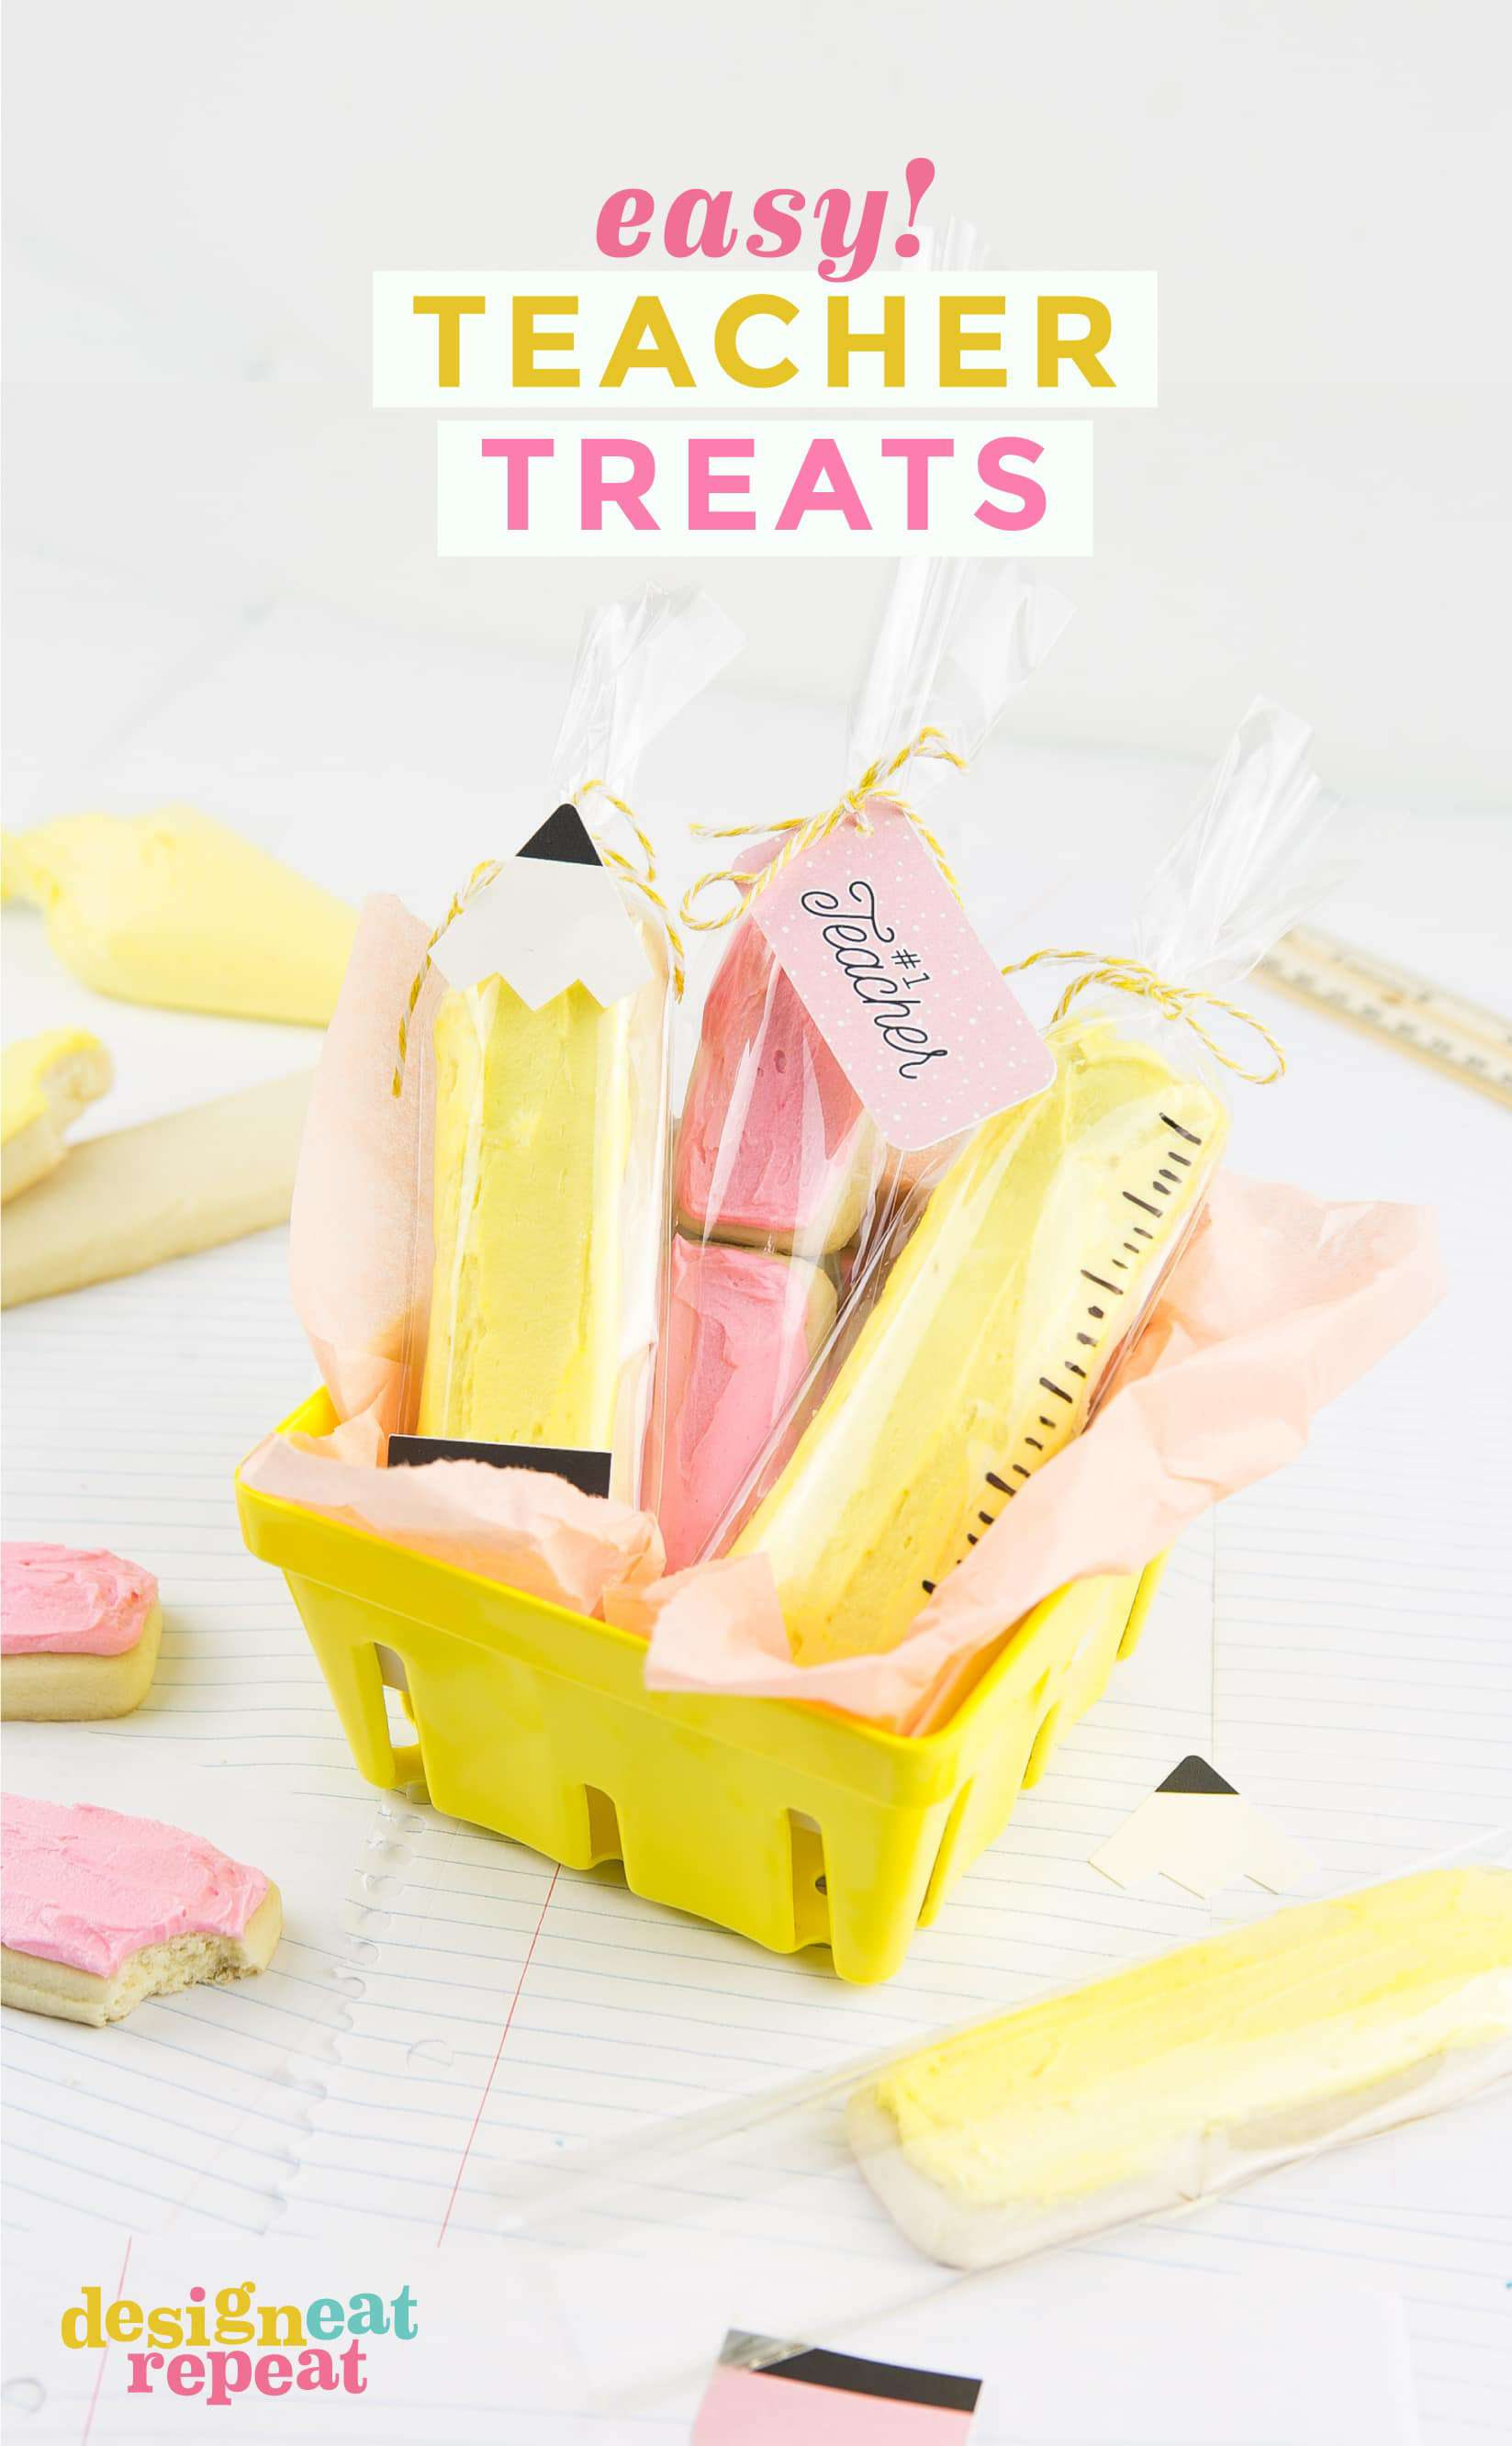 Yellow berry basket of sugar cookie sticks decorated like a pencil, eraser, and ruler.